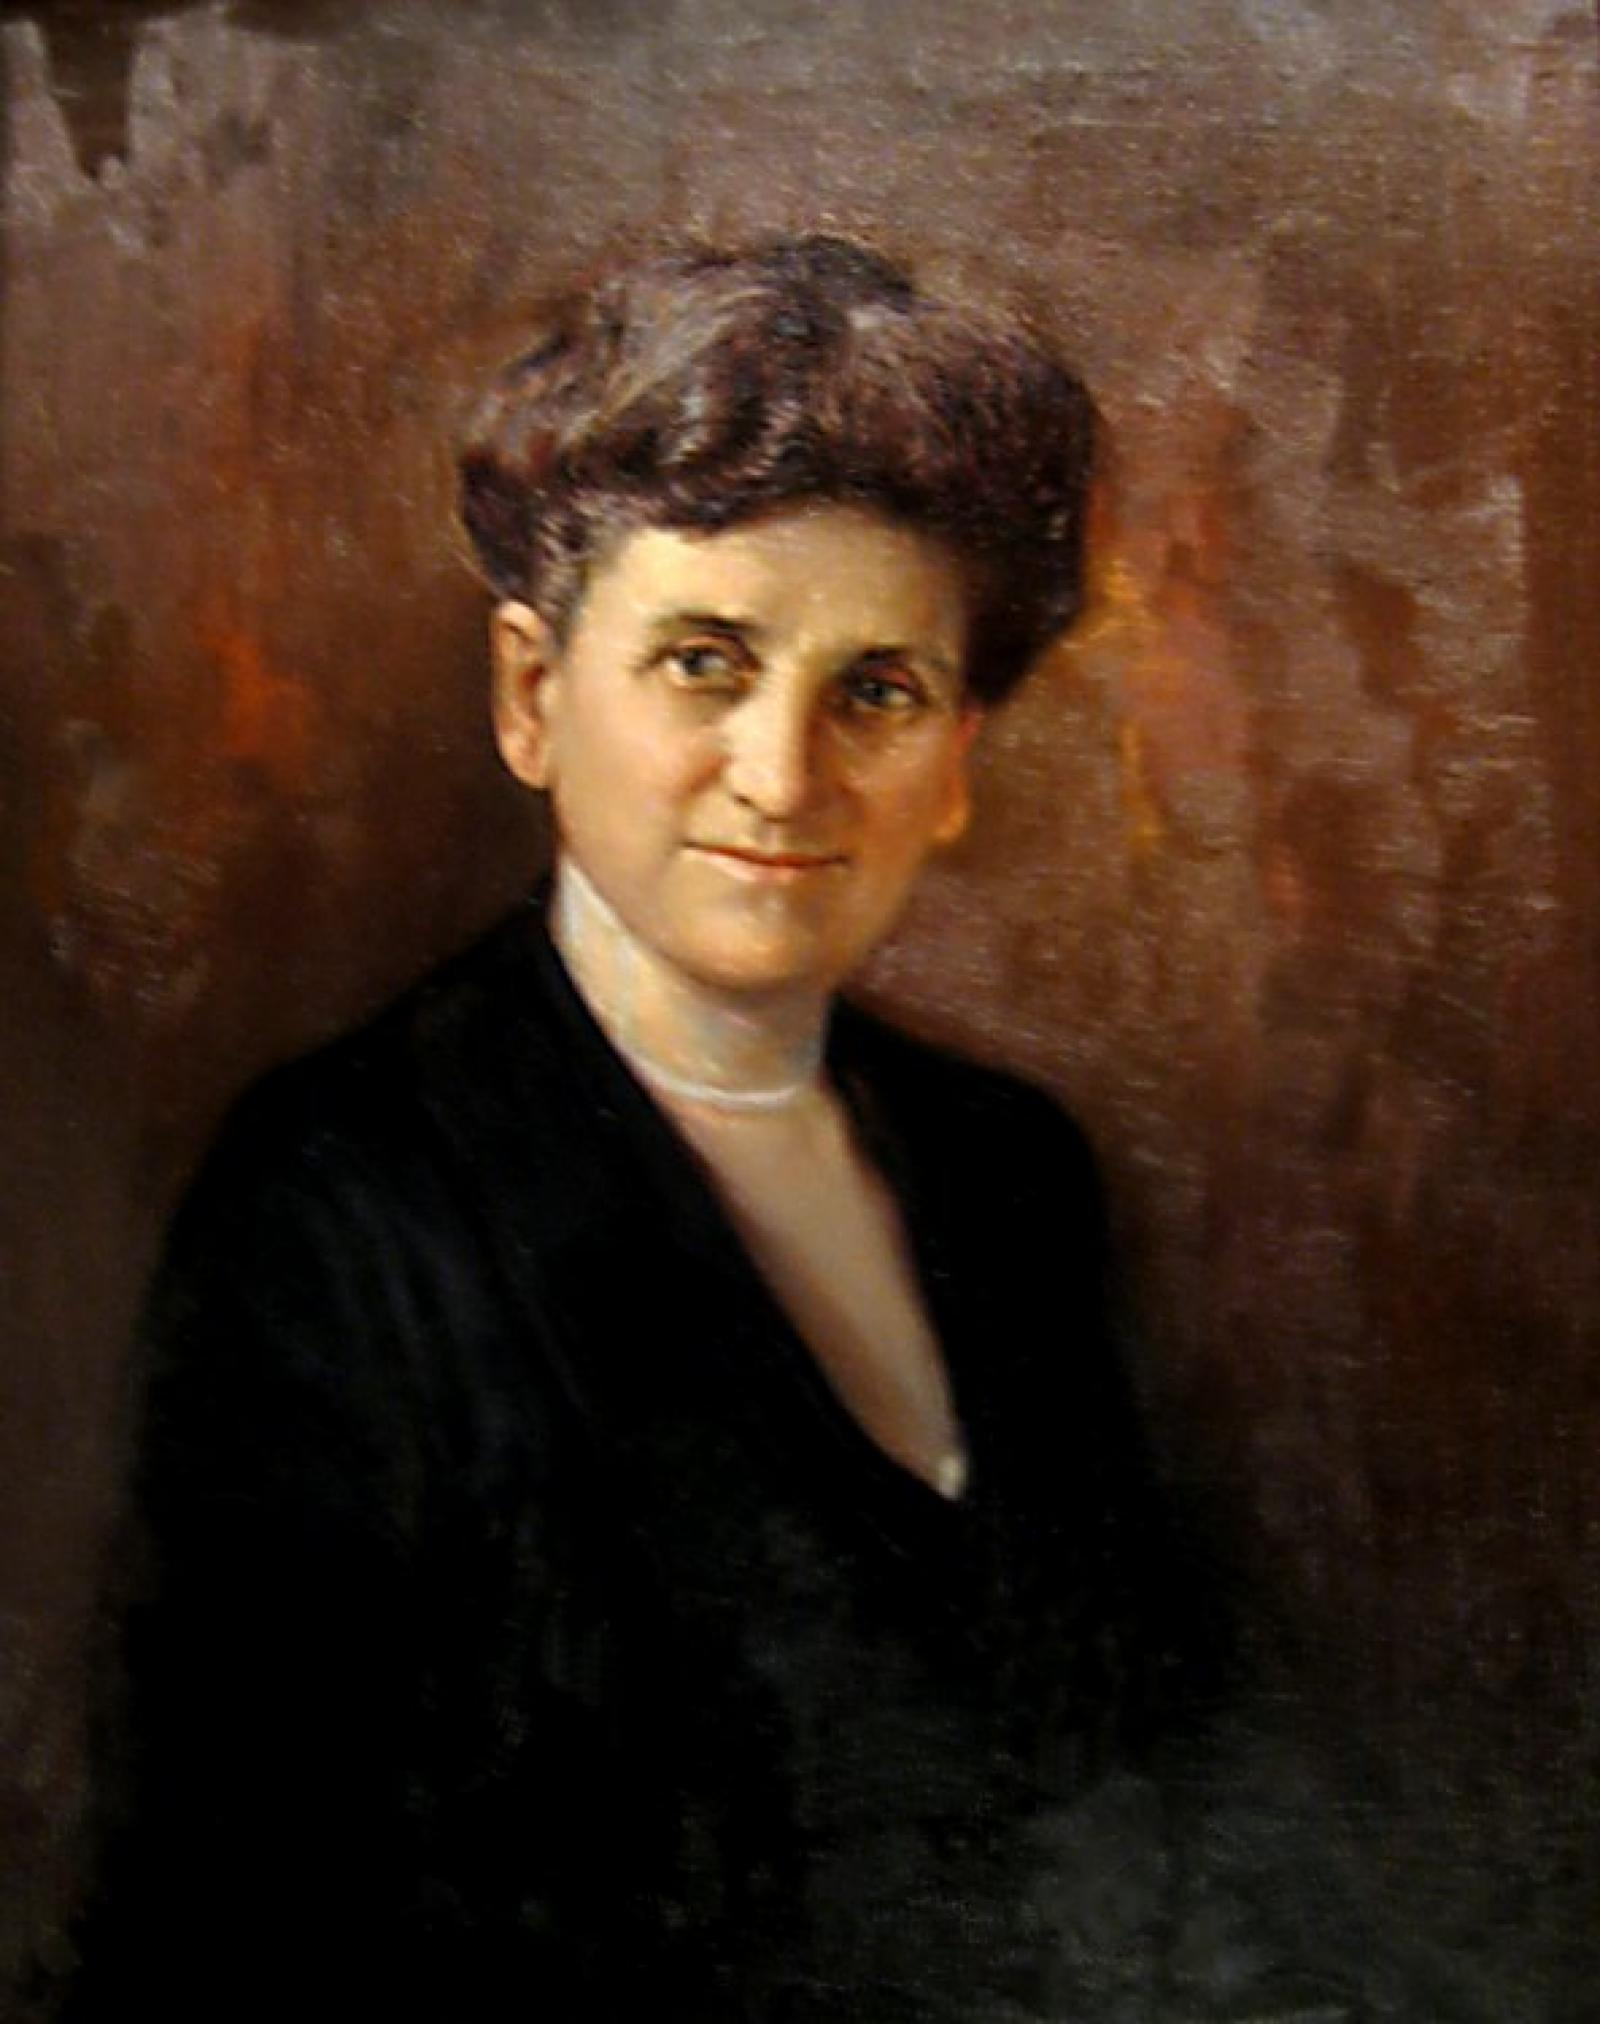 A portrait of an aging woman in a sophisticated black dress wearing a white necklace with her hair piled atop her head, pinned up.